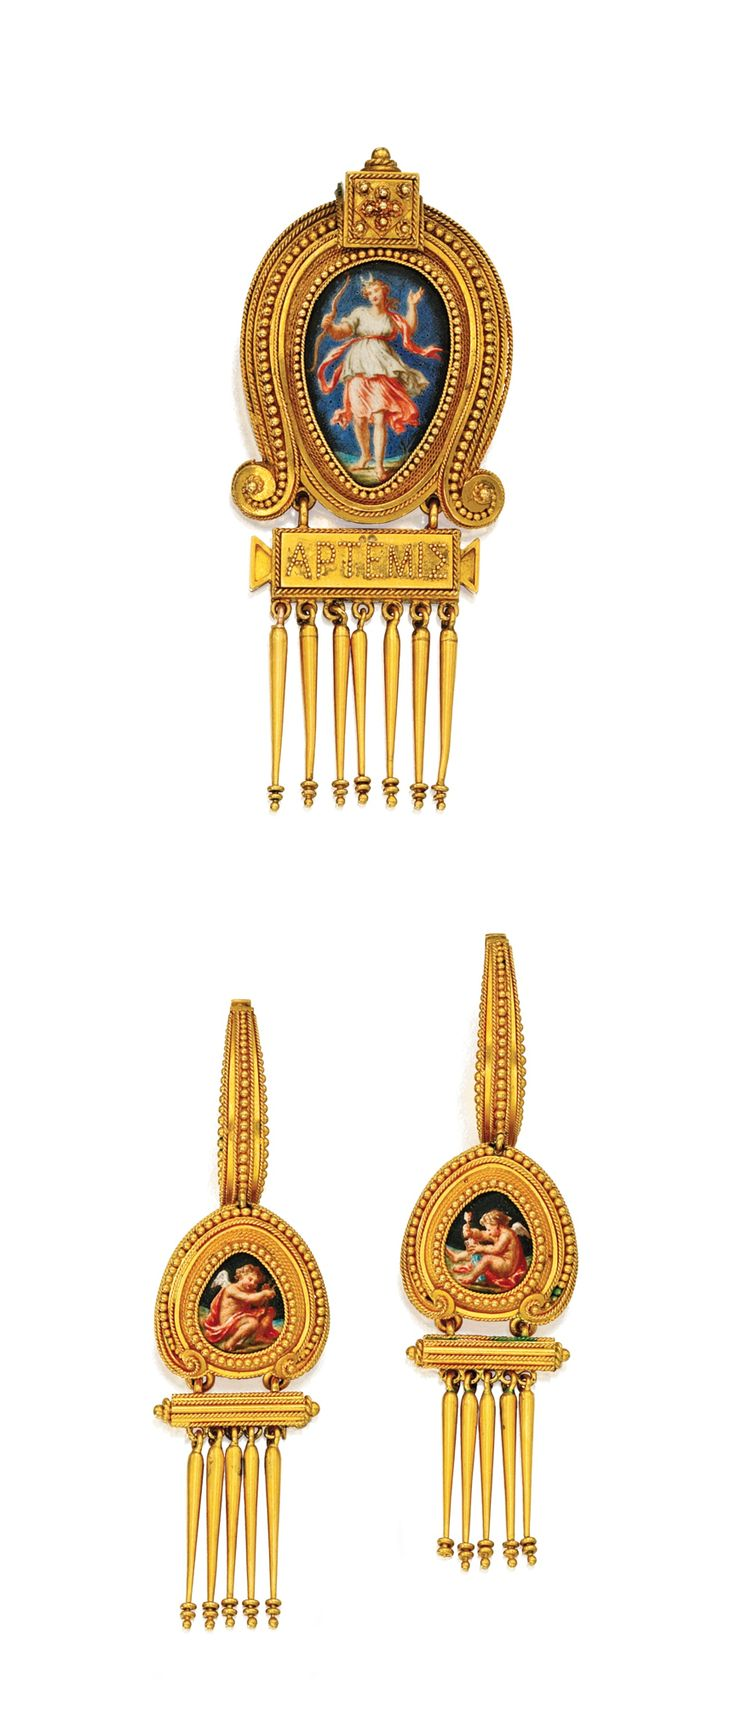 ARCHAEOLOGICAL-REVIVAL PENDANT-BROOCH AND PENDANT-EARRINGS, EUGÈNE FONTENAY,  The pendant-brooch centered by a pear-shaped enamel plaque featuring the Greek goddess Artemis framed by gold granulation and twisted gold wire, with a square-shaped cluster of granulation above and below, bearing a plaque with her name in Greek letters, suspending a gold fringe; the earrings of similar design, decorated with pear-shaped enamels featuring Erotes, one with a bow, the other with an arrow, circa 1870.